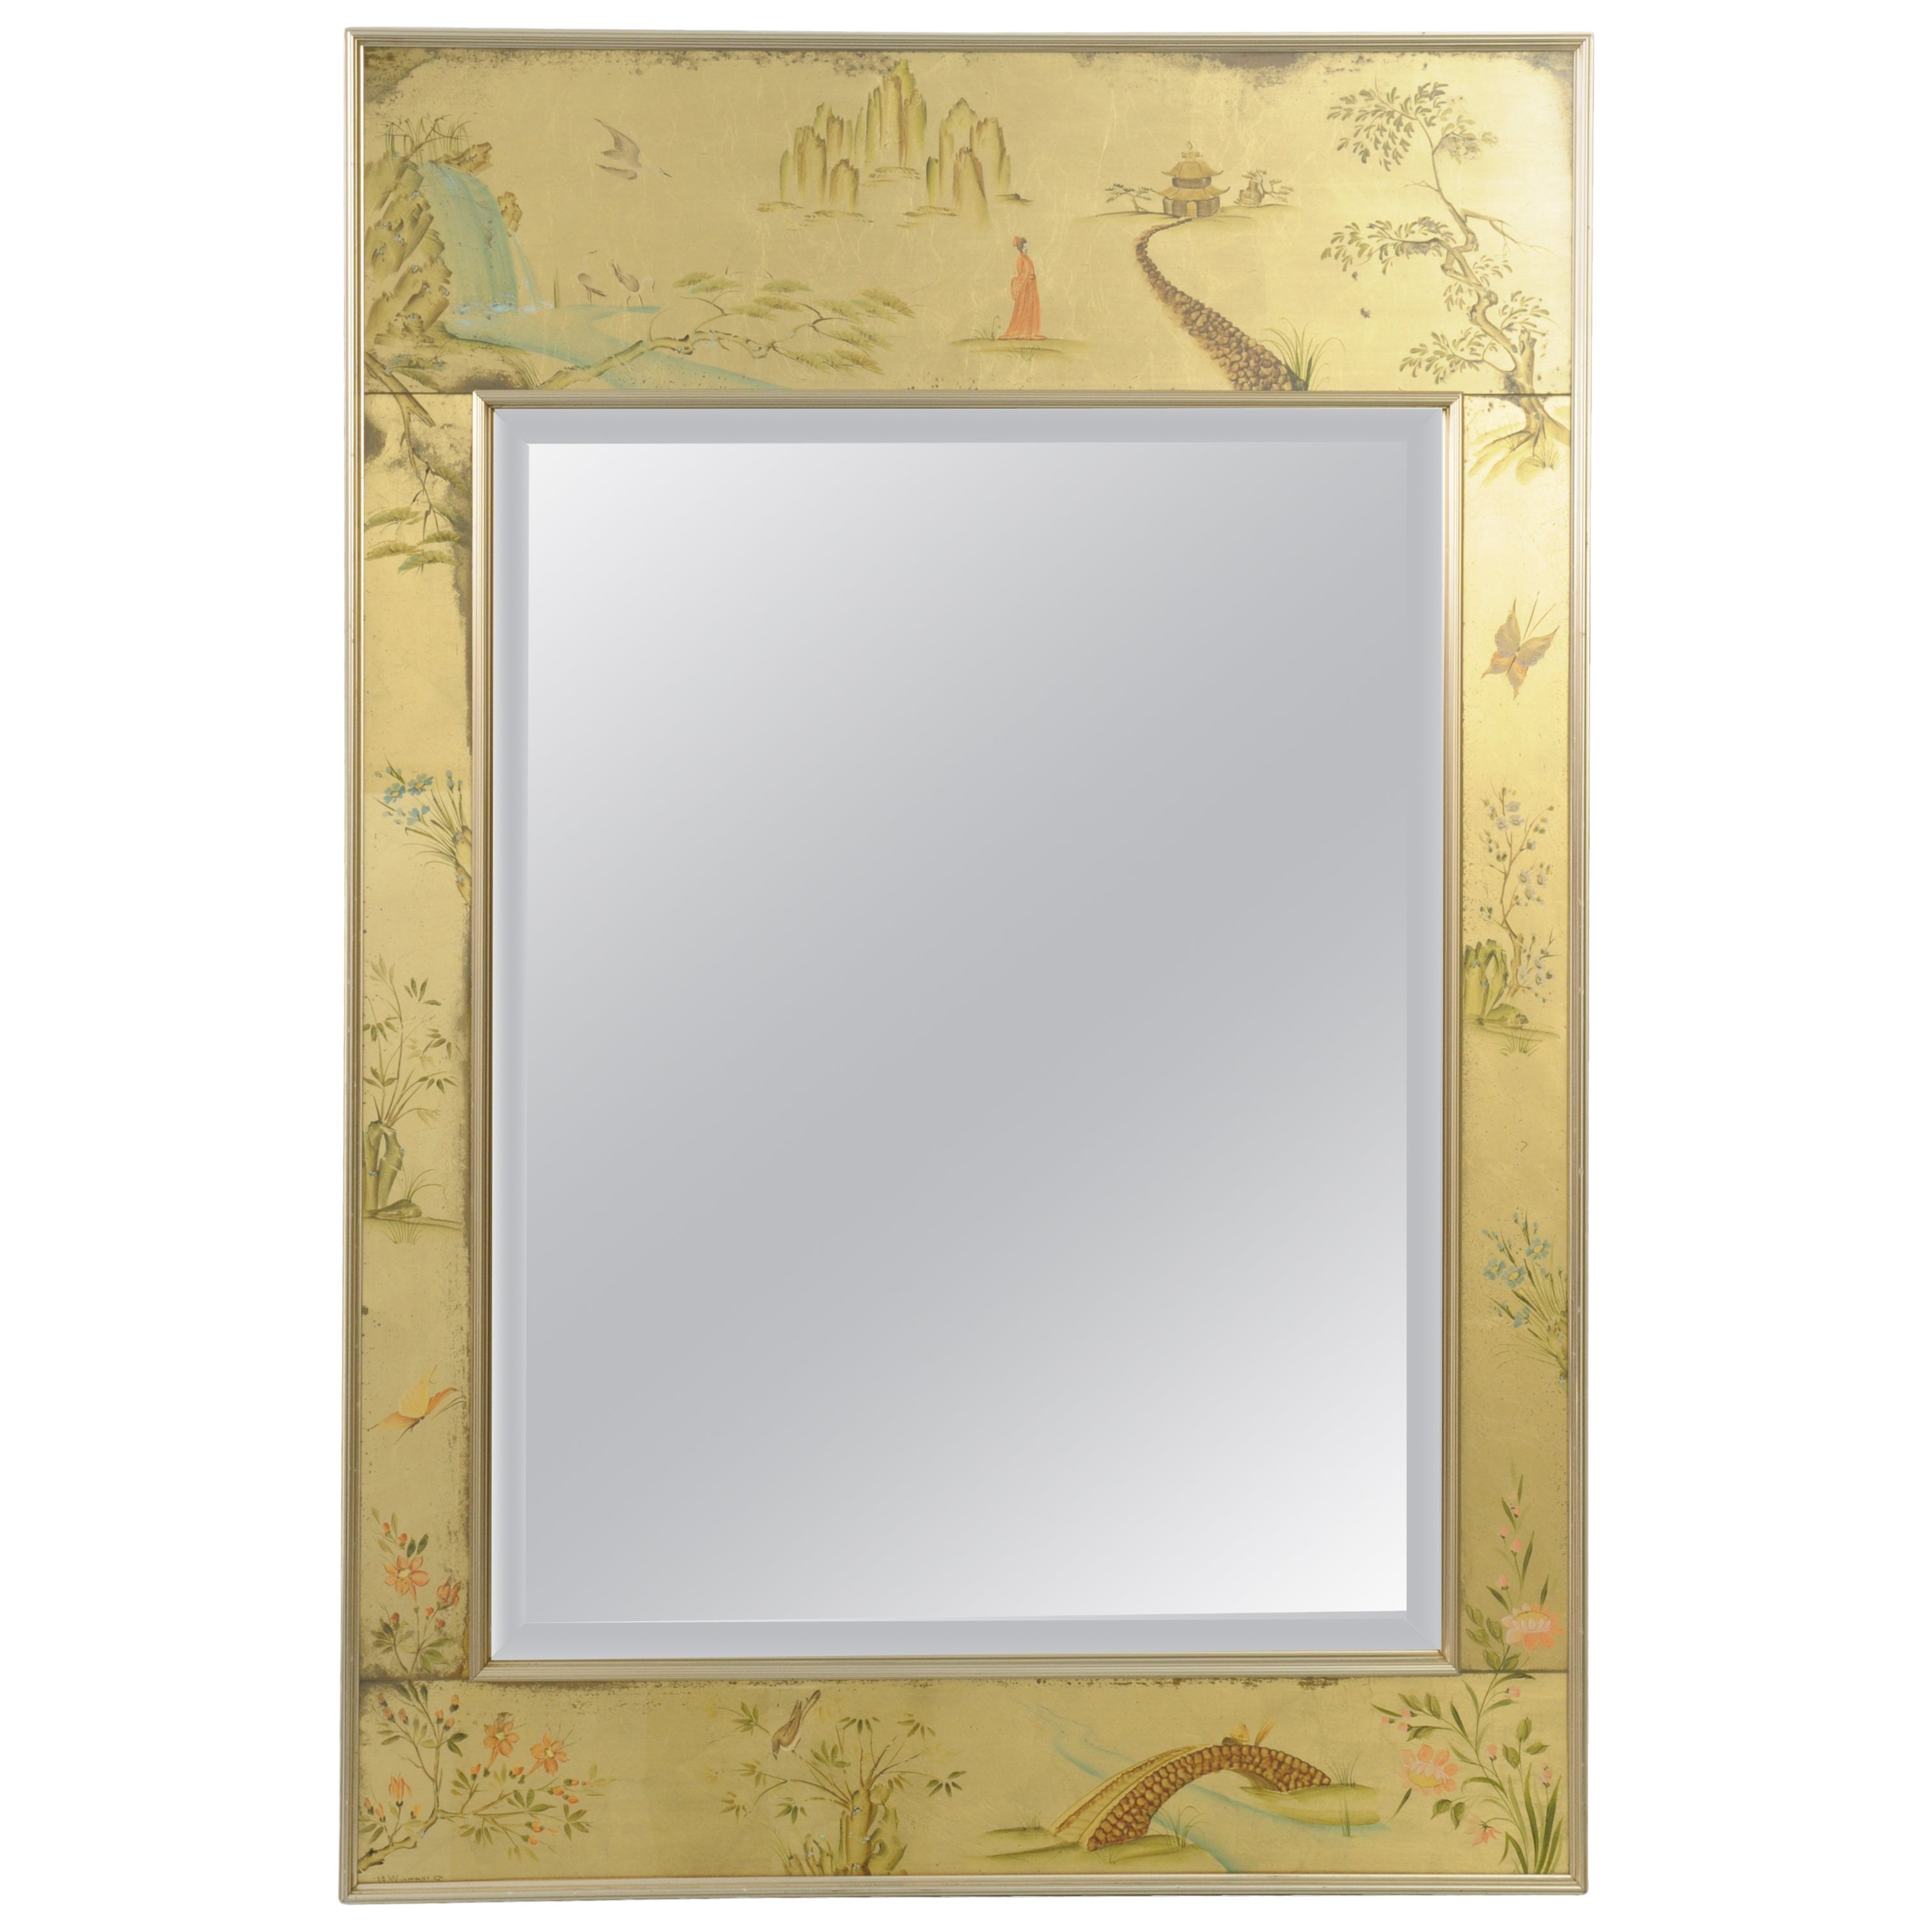 Labarge Chinoiserie Style Gold Églomisé Wall Mirror Reverse Painted Asian Signed Pertaining To Preferred Asian Style Wall Mirrors (Gallery 3 of 20)